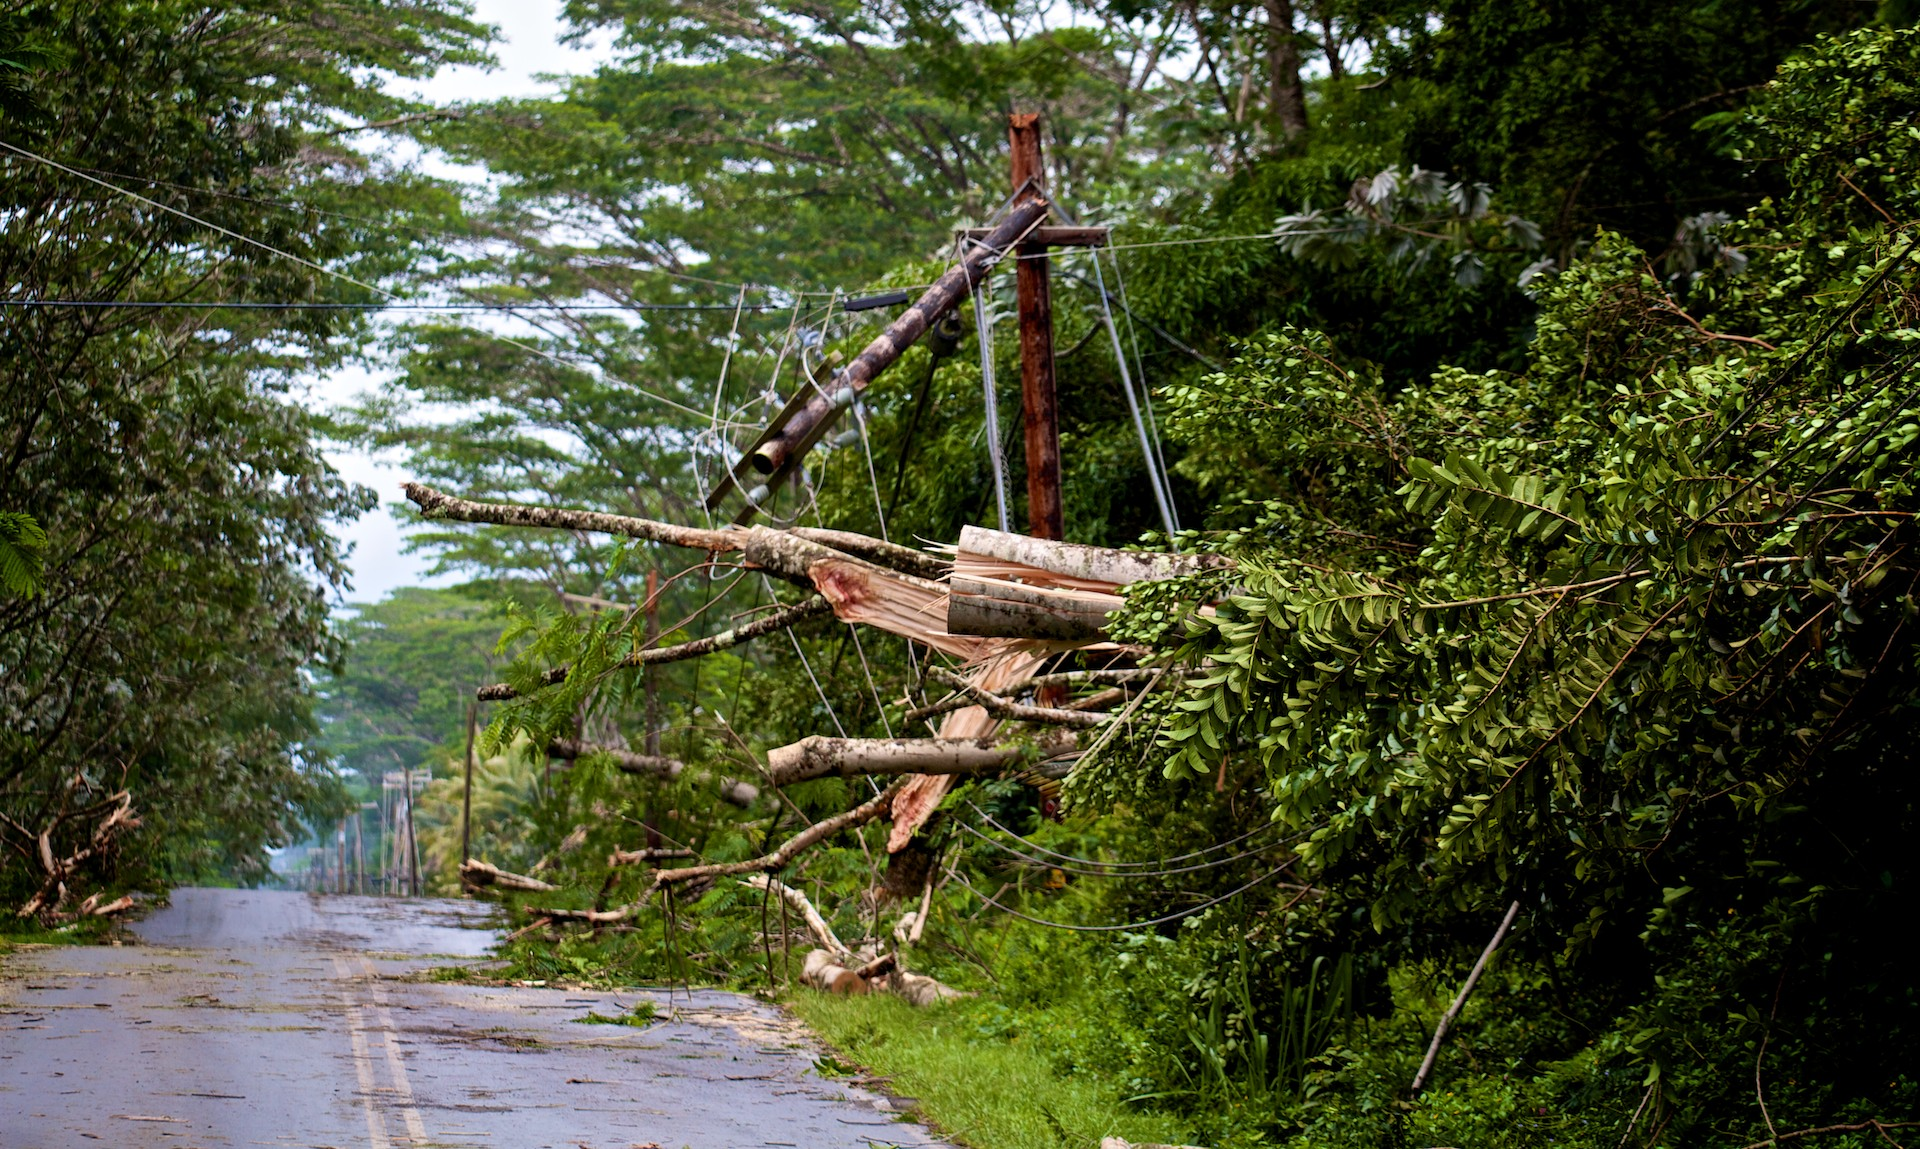 Trees toppled by Tropical Storm Iselle crashed onto utility lines and snapped poles in Hawaiian Paradise Park early Friday morning, August 8, 2014. Here trees alongside Makuu Drive crashed down. Photo by Baron Sekiya | Hawaii 24/7